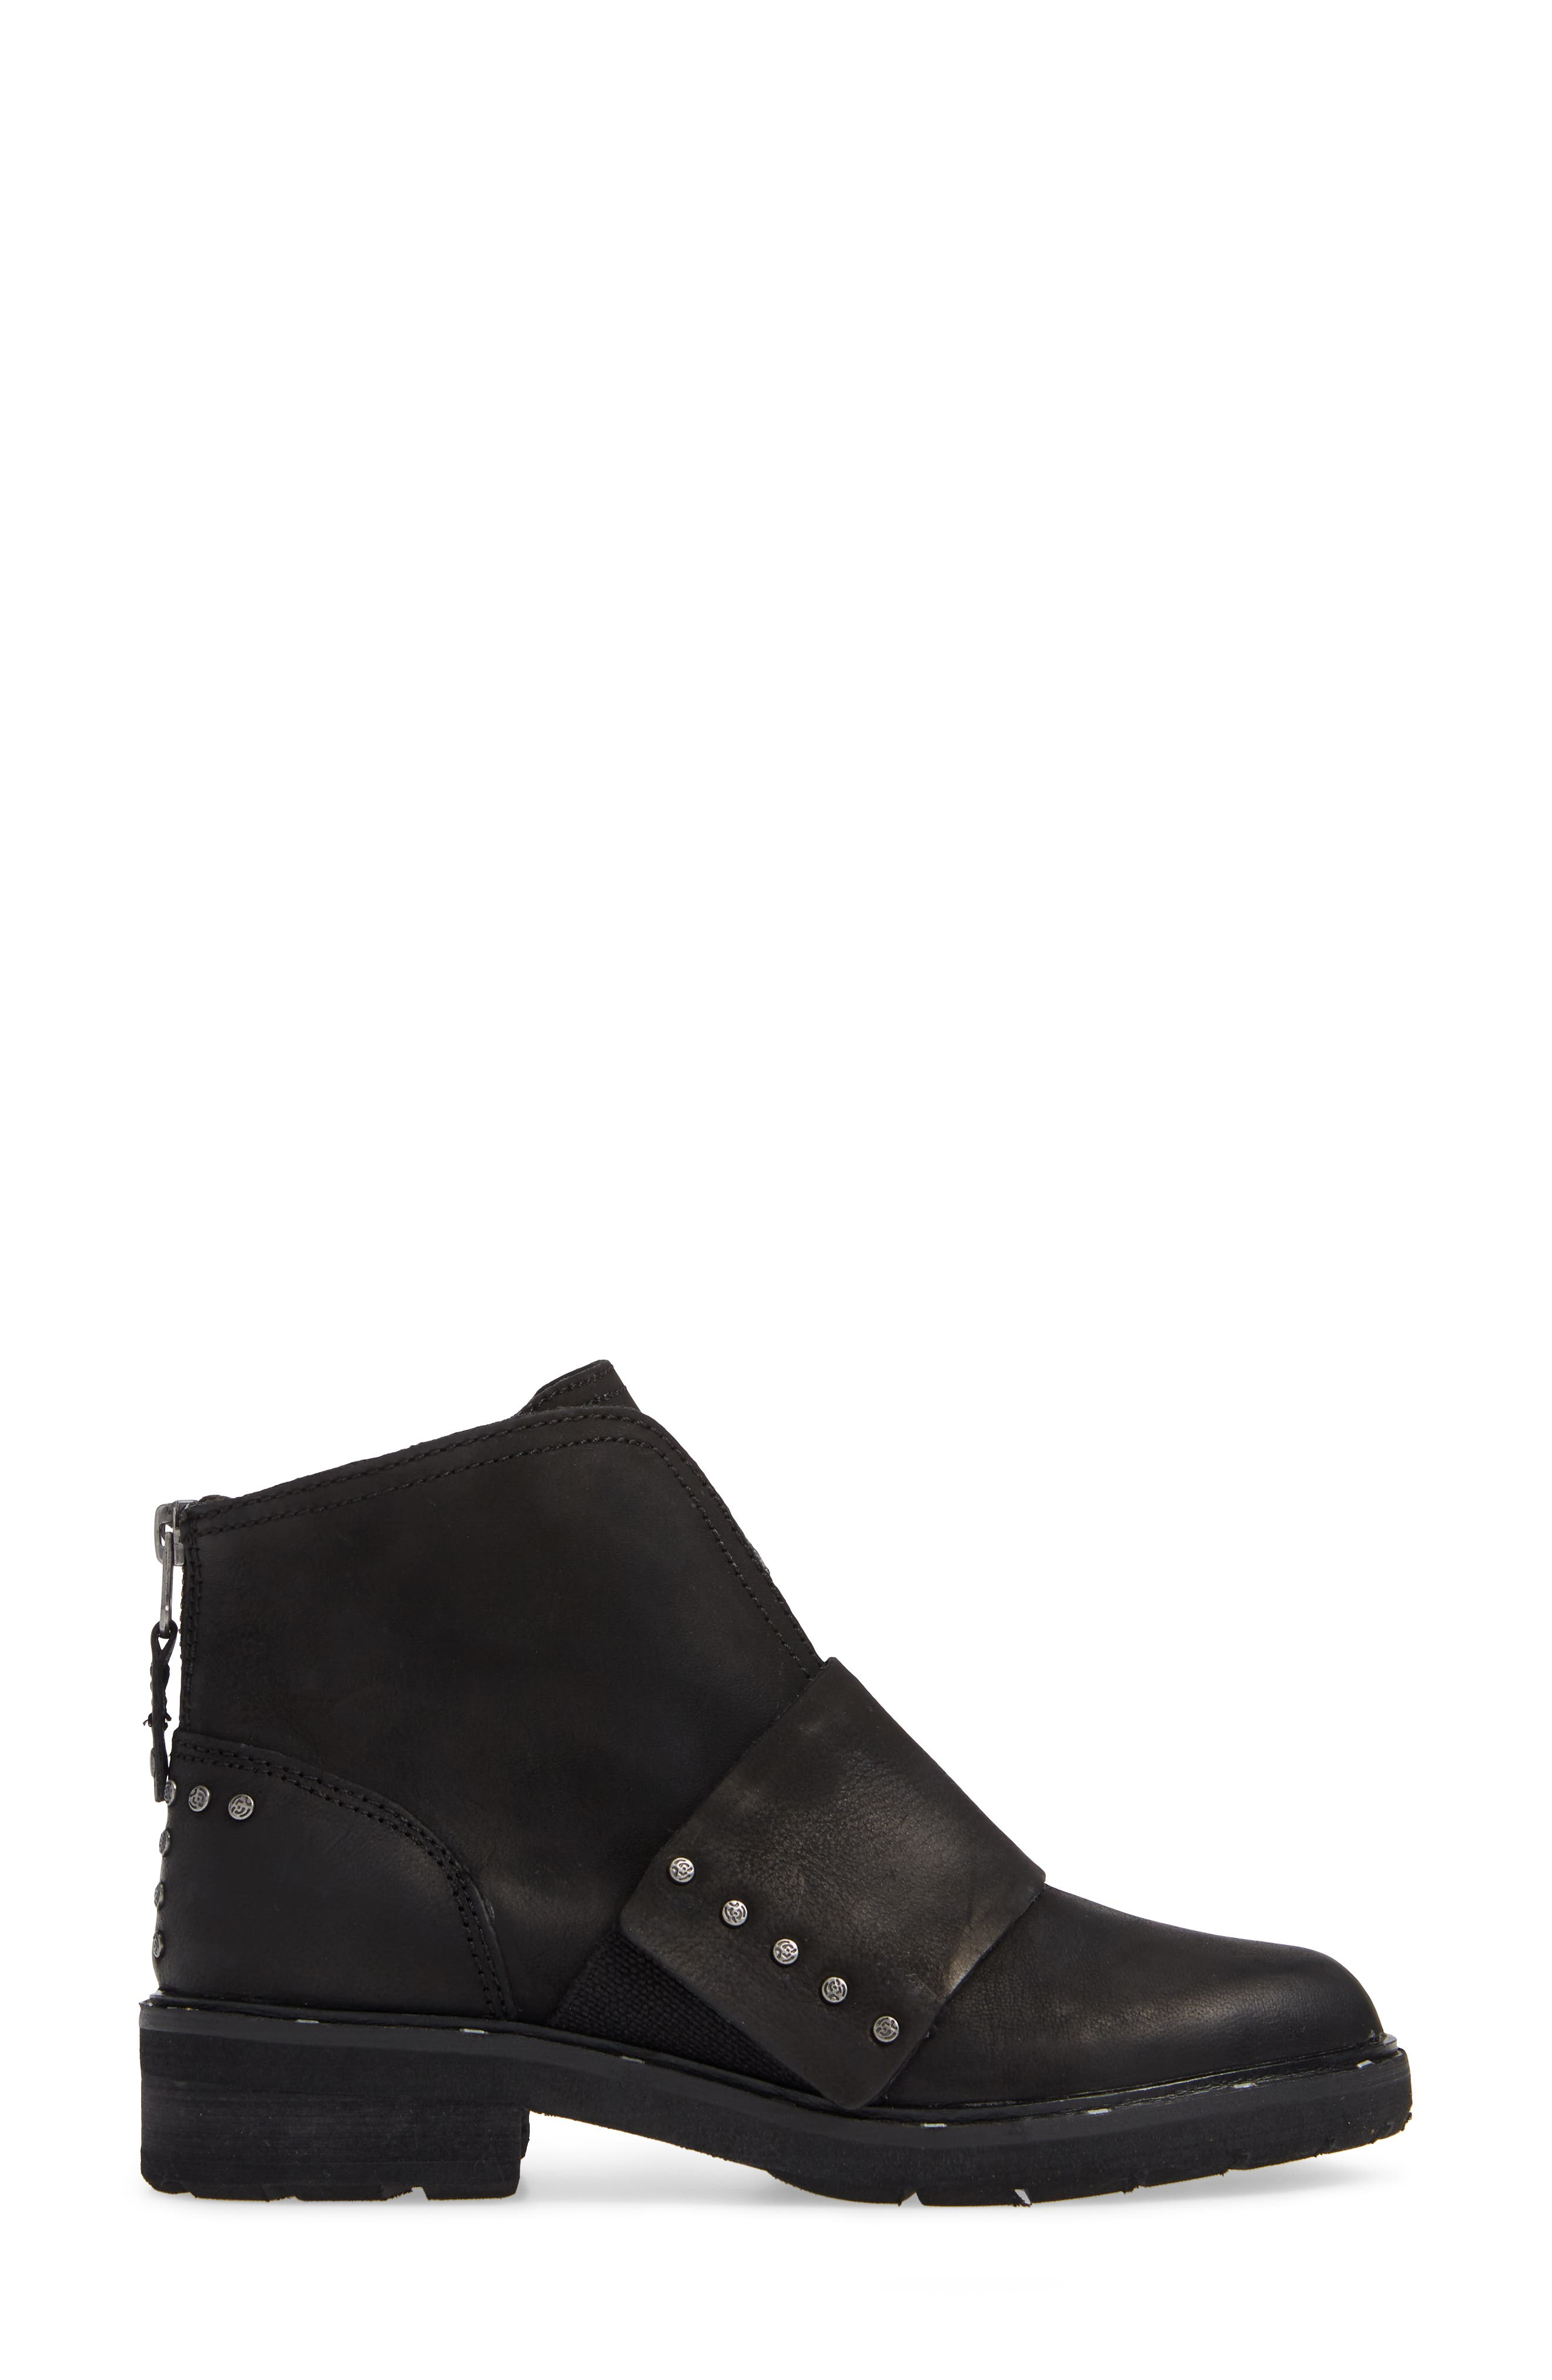 Frontage Bootie,                             Alternate thumbnail 3, color,                             BLACK LEATHER